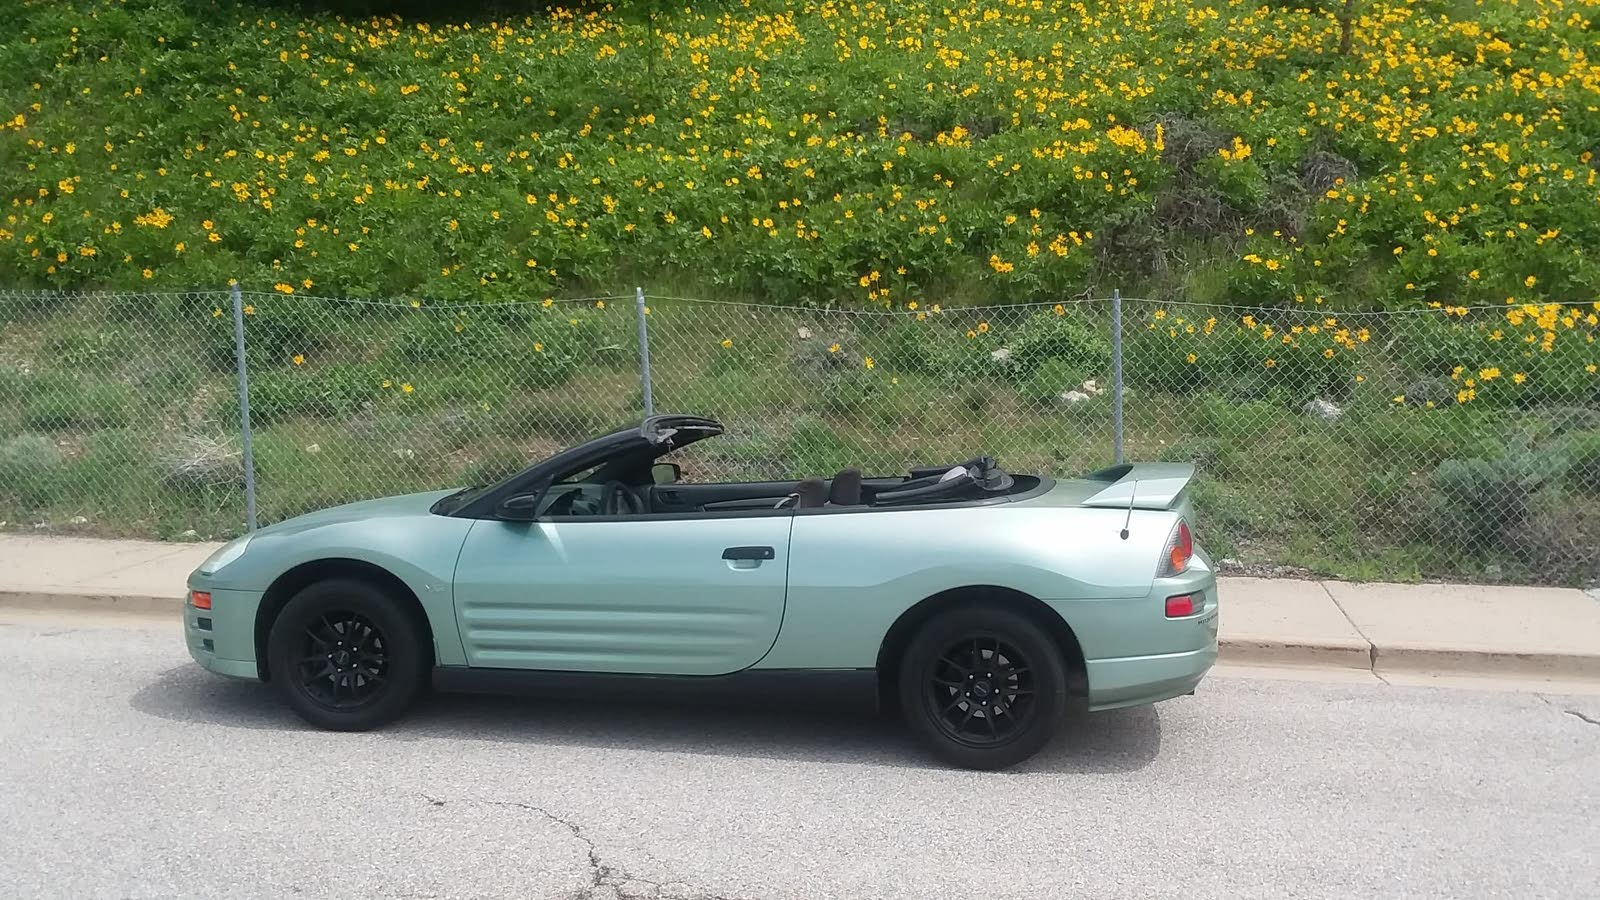 Mitsubishi Eclipse Spyder Questions Car Died Now Wont Start 2008 Lancer Fuel Filter Previous Owner Replaced And Pump Ive Had The For 4 Months With No Issue Until Front Side To Mount Is Broken Not Sure If That